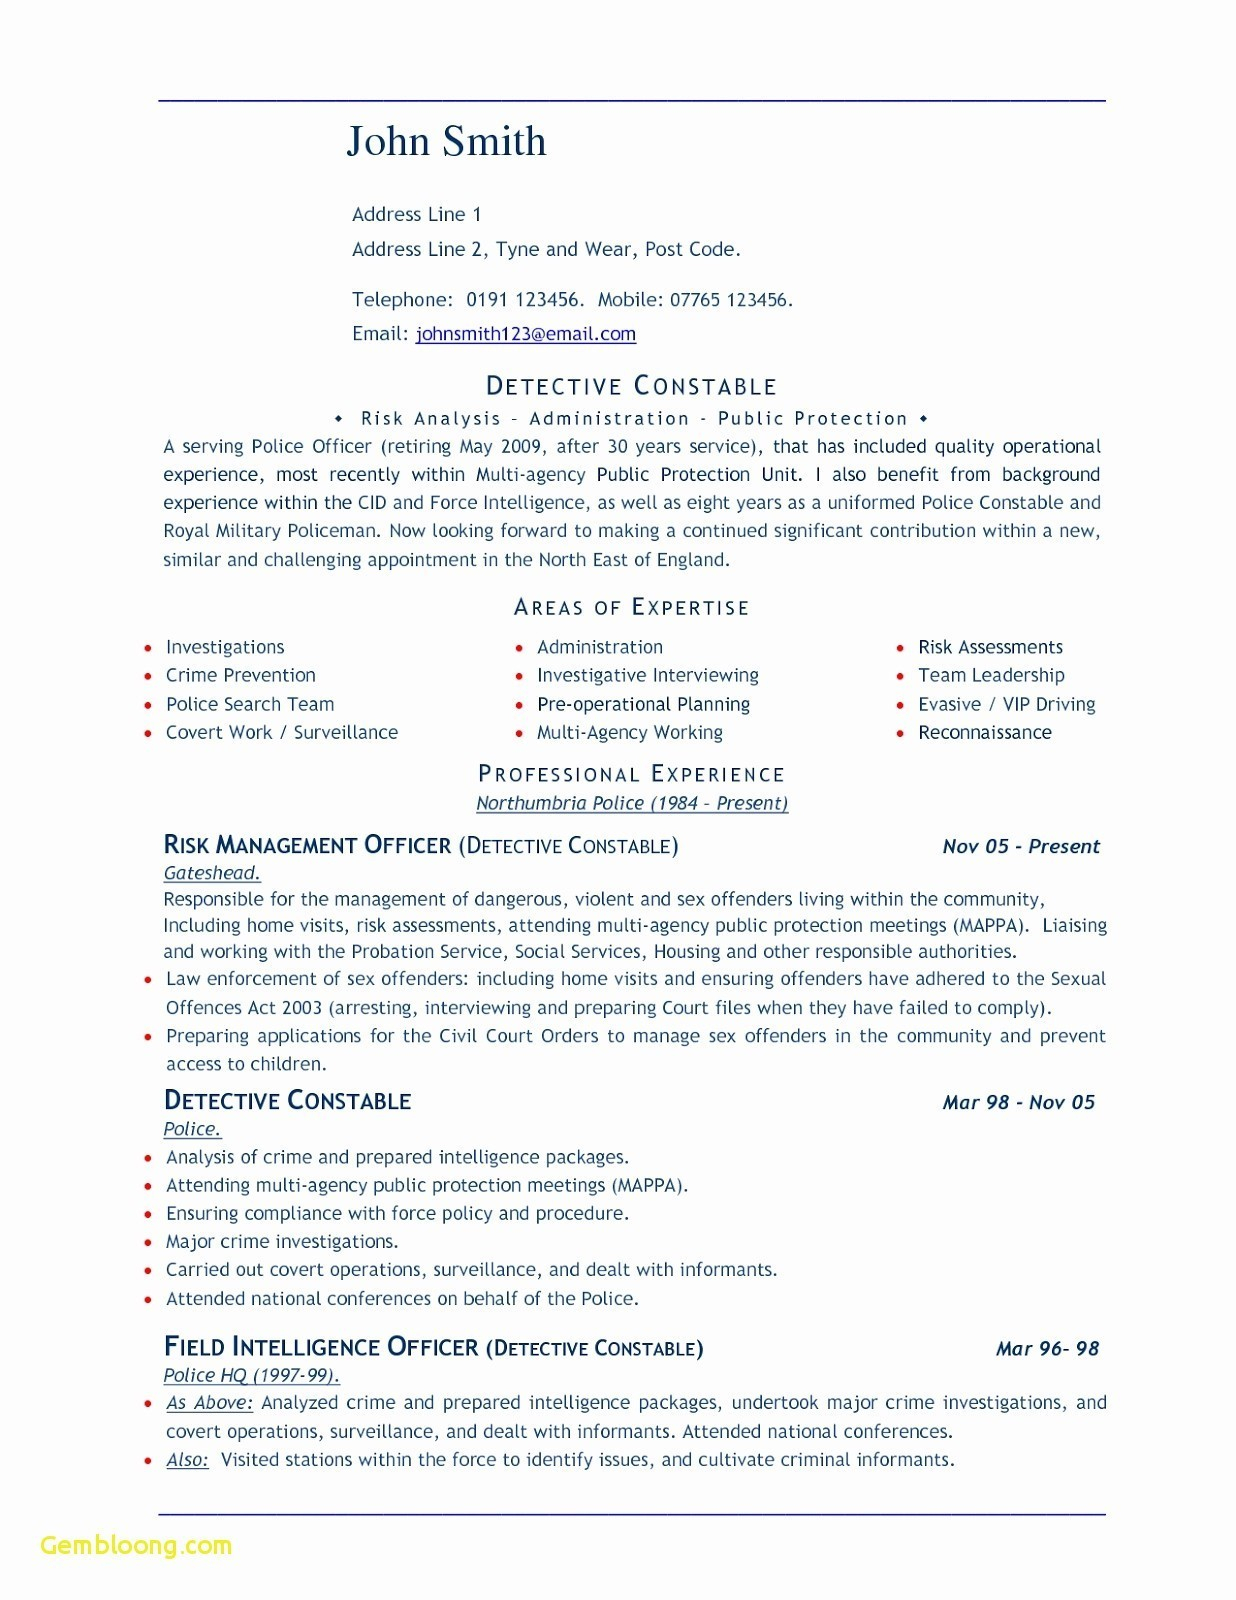 libreoffice resume template example-Microsoft Word Resume Template New 24 Resume Template Libreoffice Einzigartig Für Libreoffice Free Download Docs 12-l